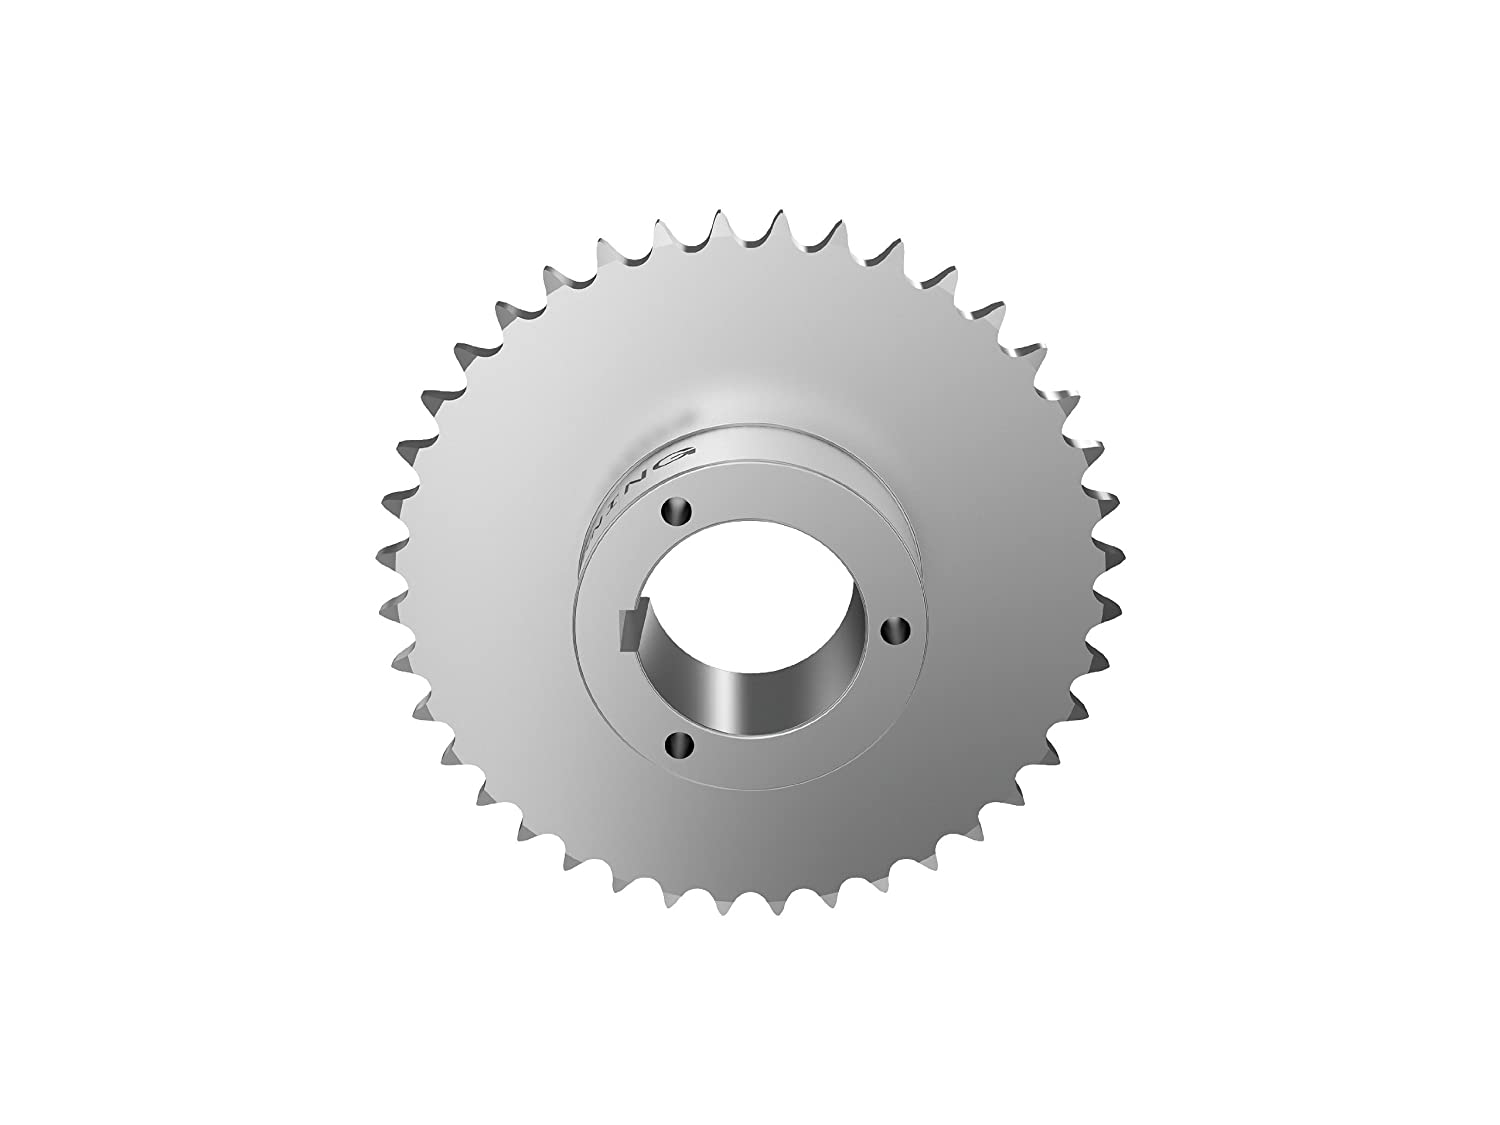 Browning 60Q60 Roller Chain Sprocket, Single Strand, Split Taper, Bushed, Steel, 60 Pitch, 60 Teeth Regal